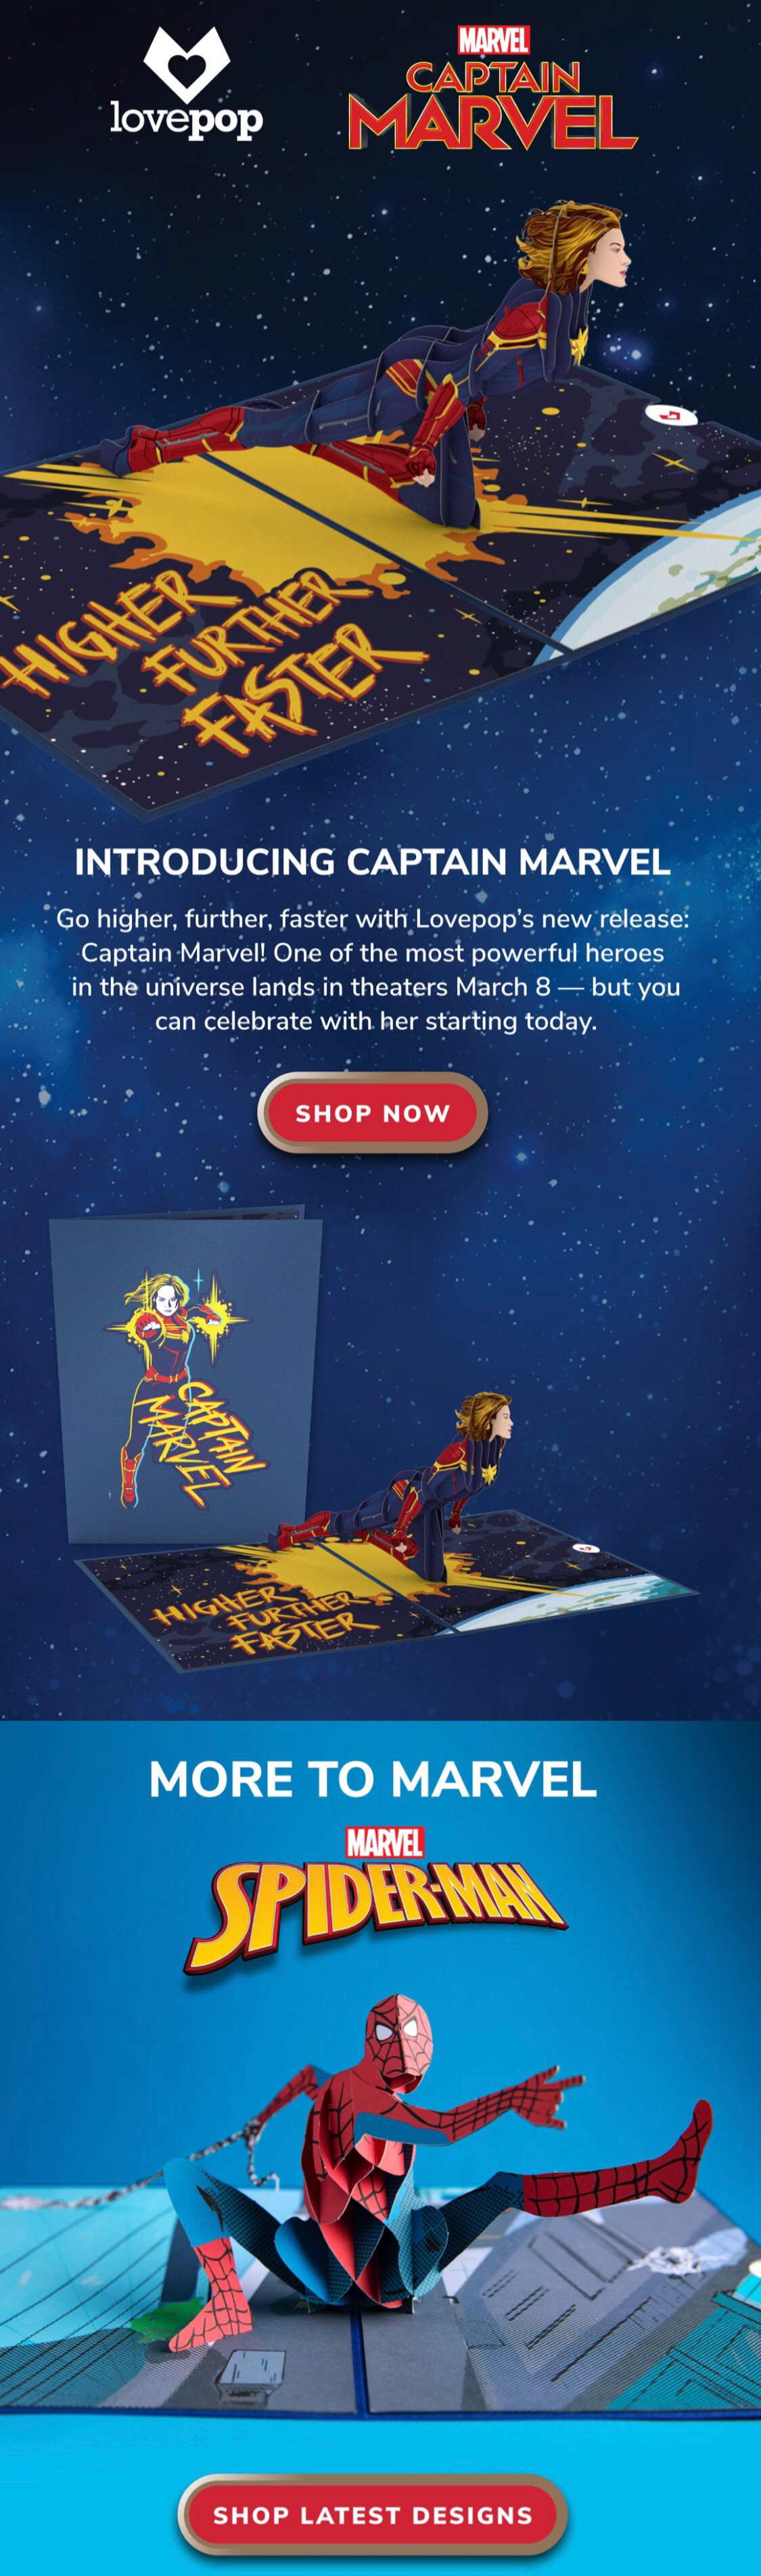 Lovepop Cards new design email launch:  Marvel's Spider-Man